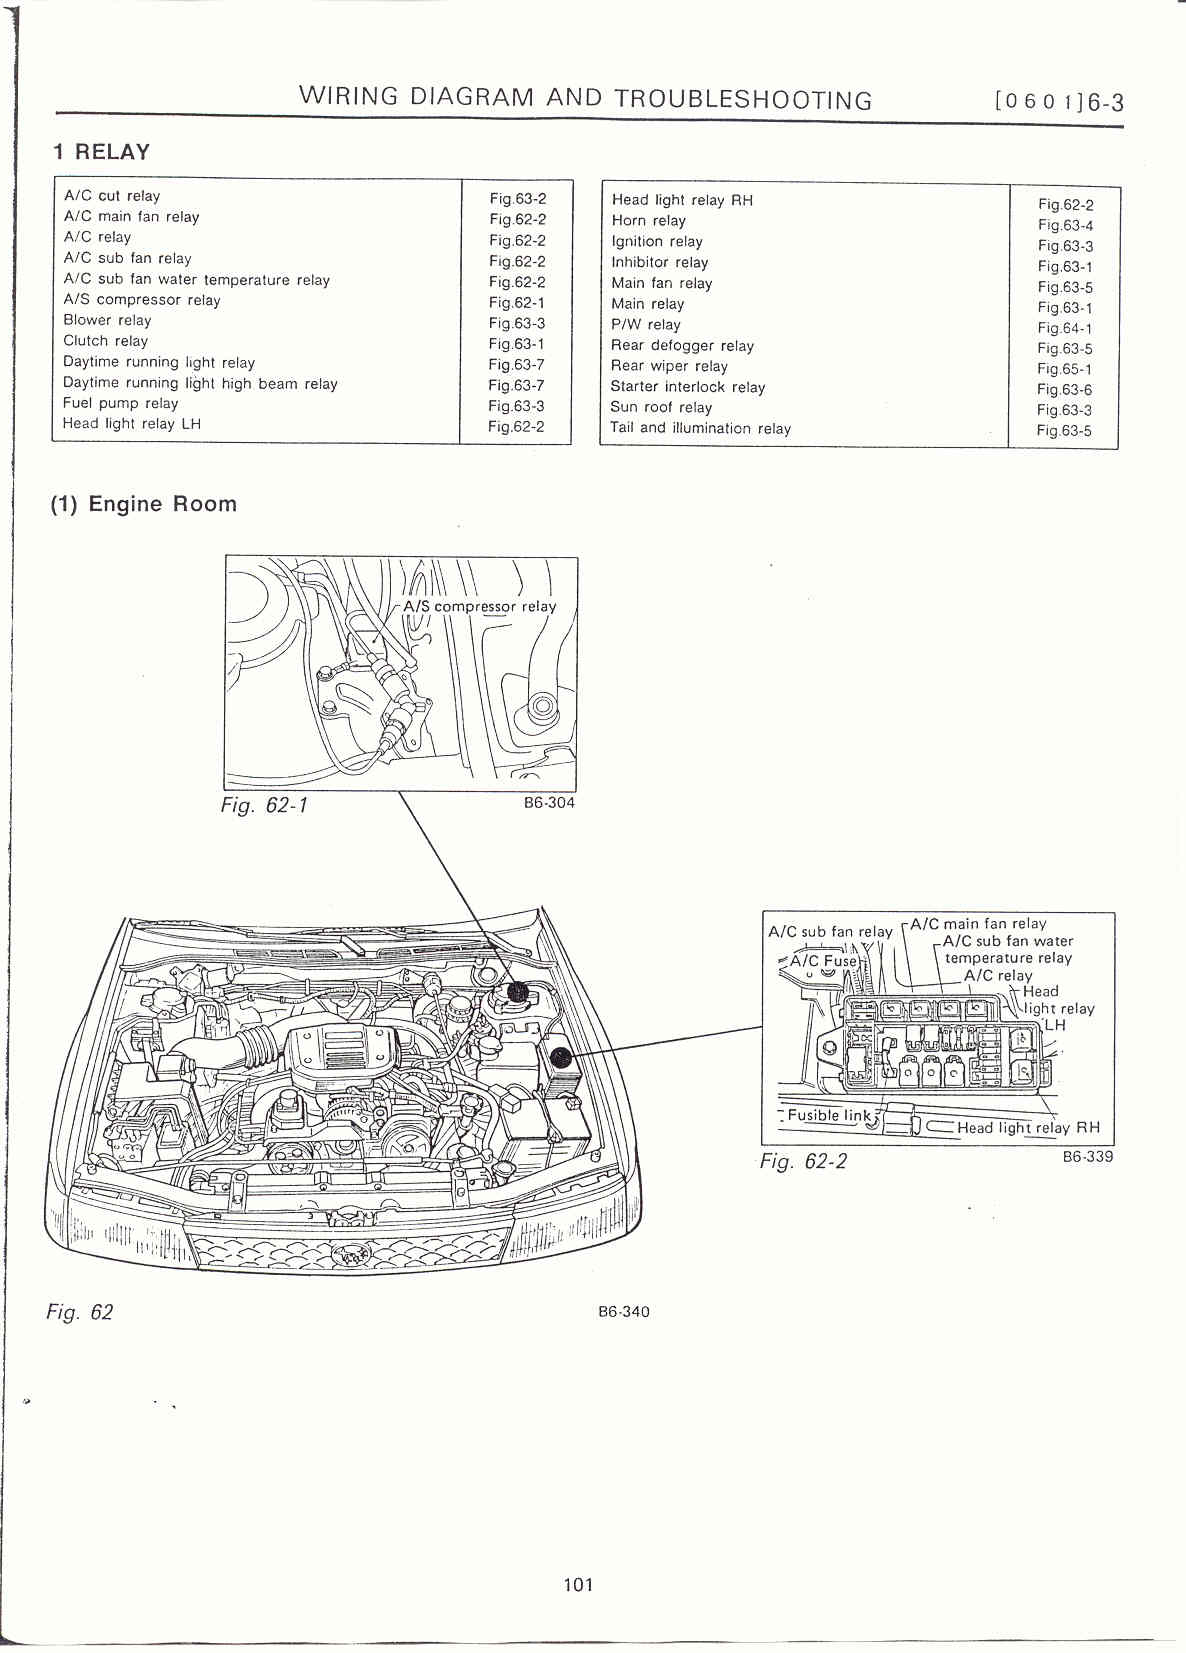 Subaru Outback Engine Room Fuse Box 35 Wiring Diagram Images 6 3 Electrical Unit Location02 Surrealmirage Legacy Swap Info Notes